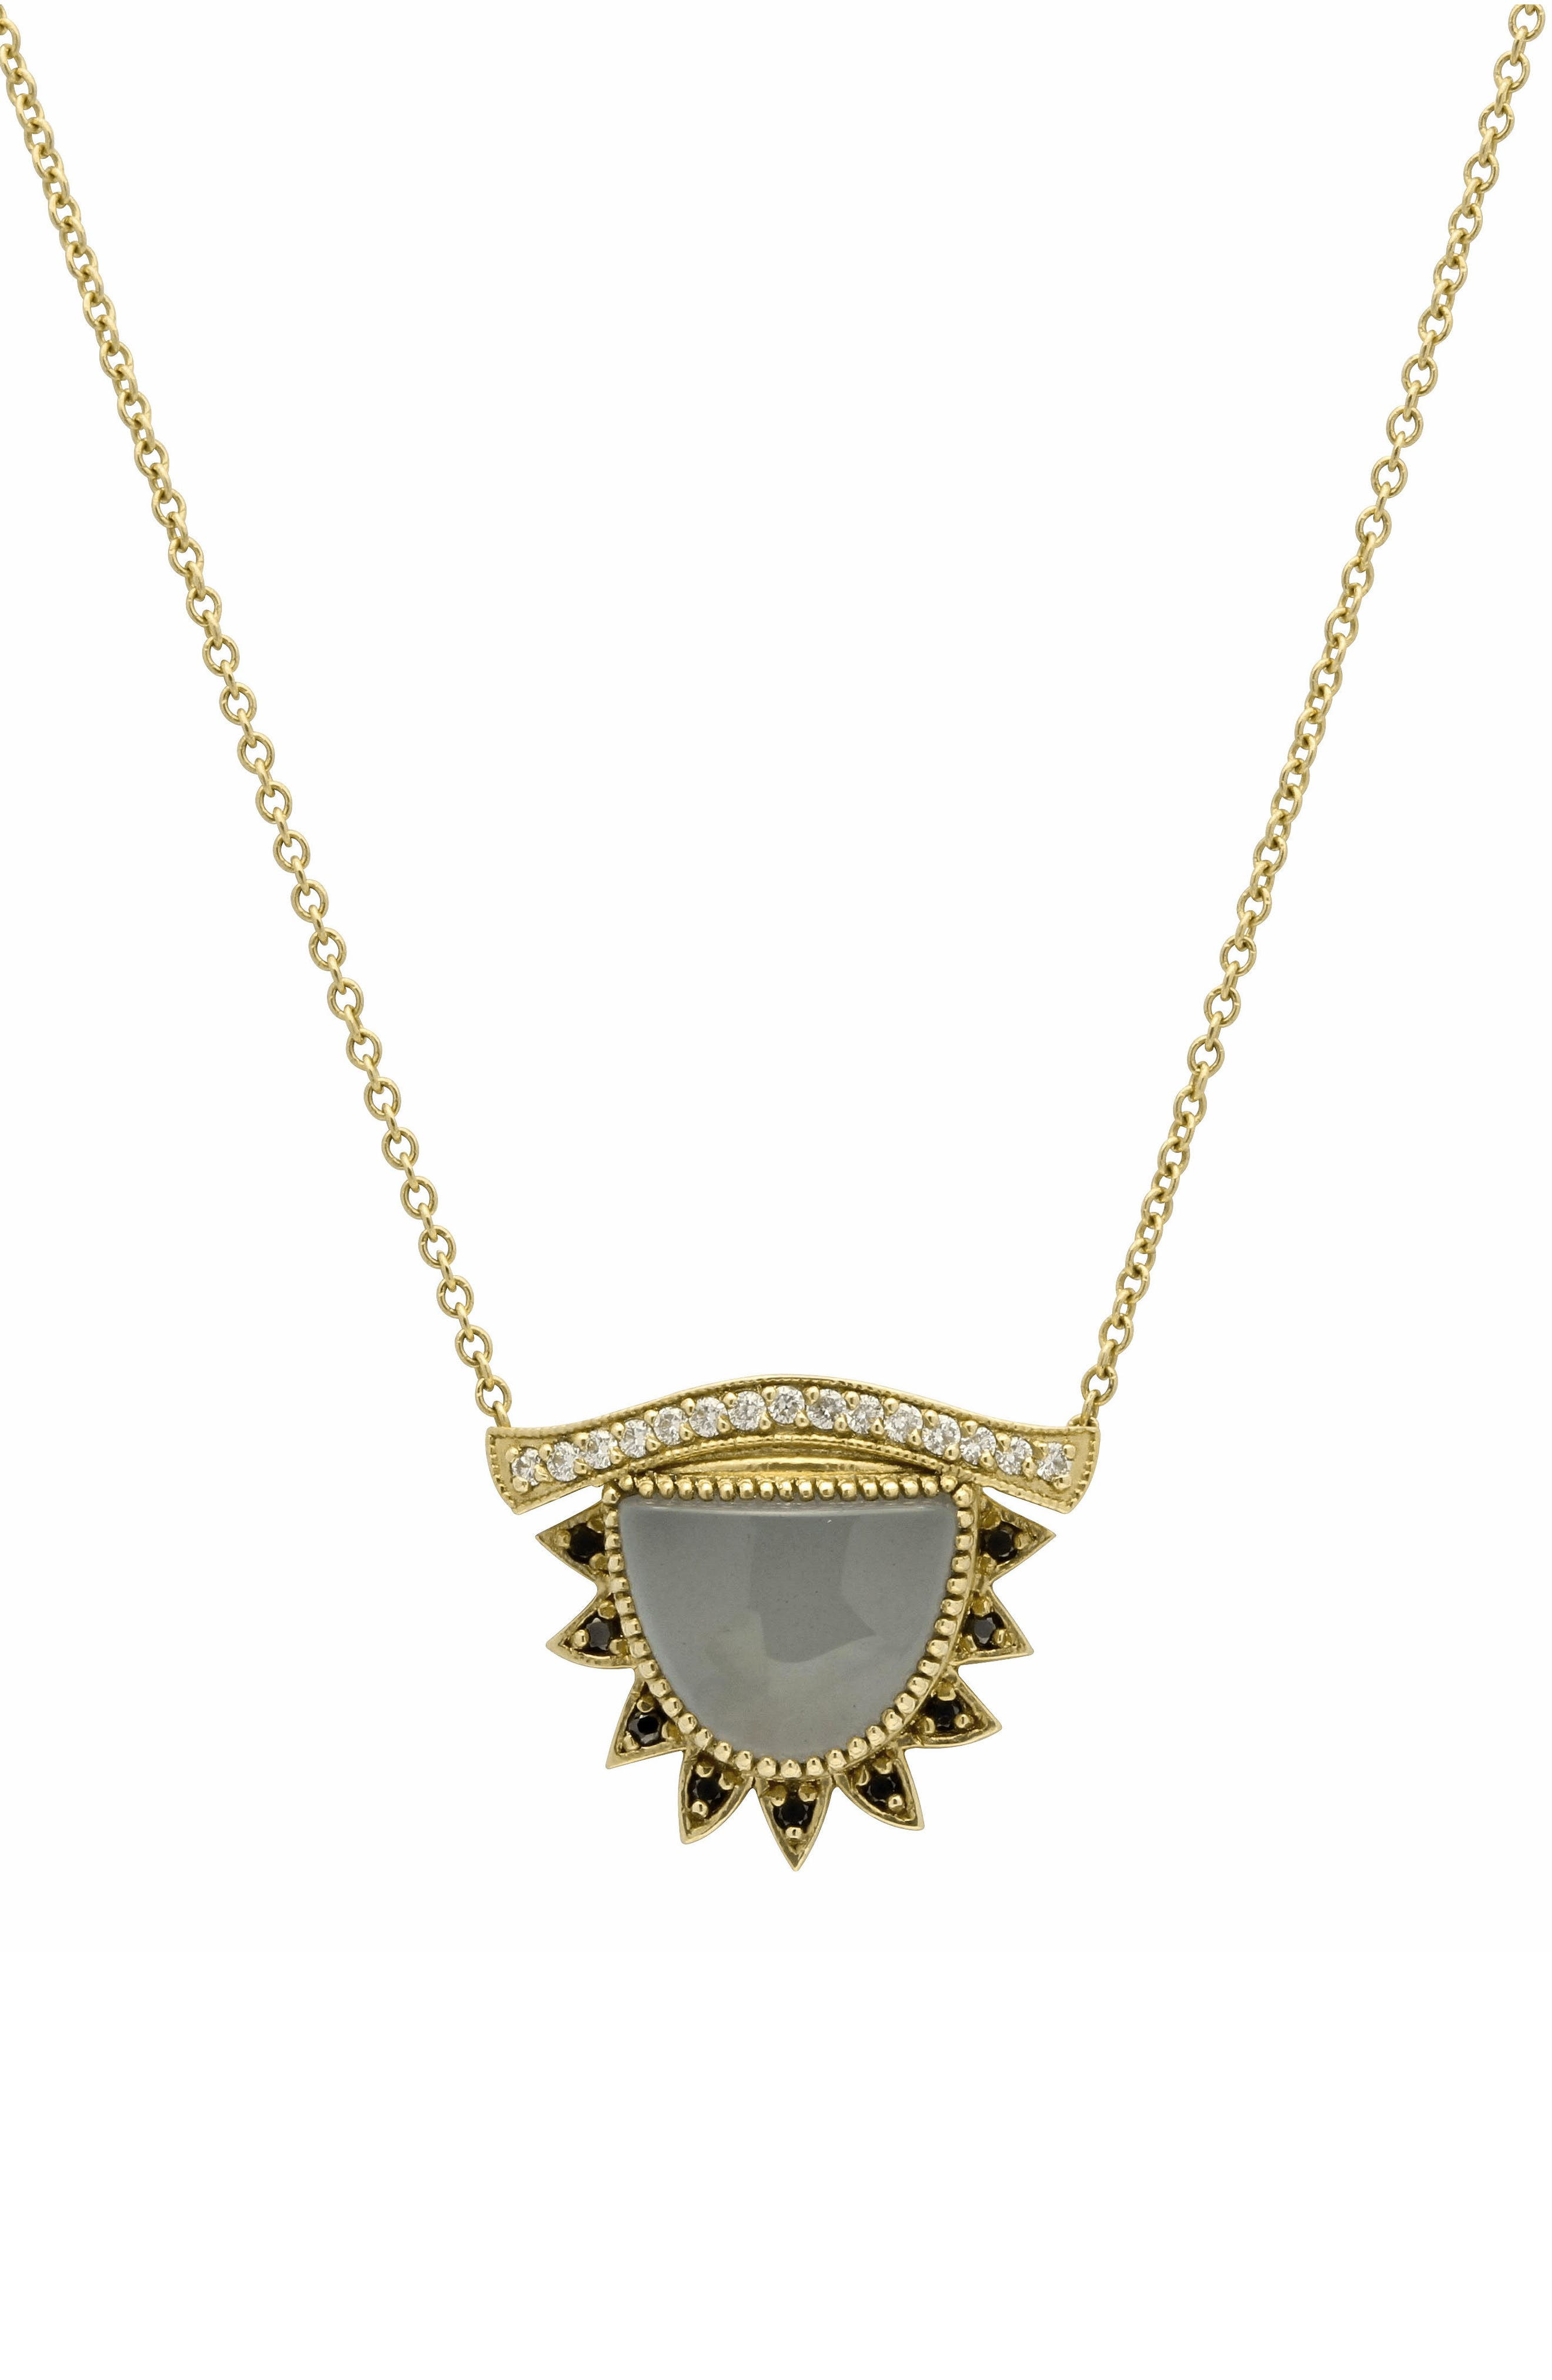 Inspire & Calm Small Third Eye Necklace,                             Main thumbnail 1, color,                             YELLOW GOLD